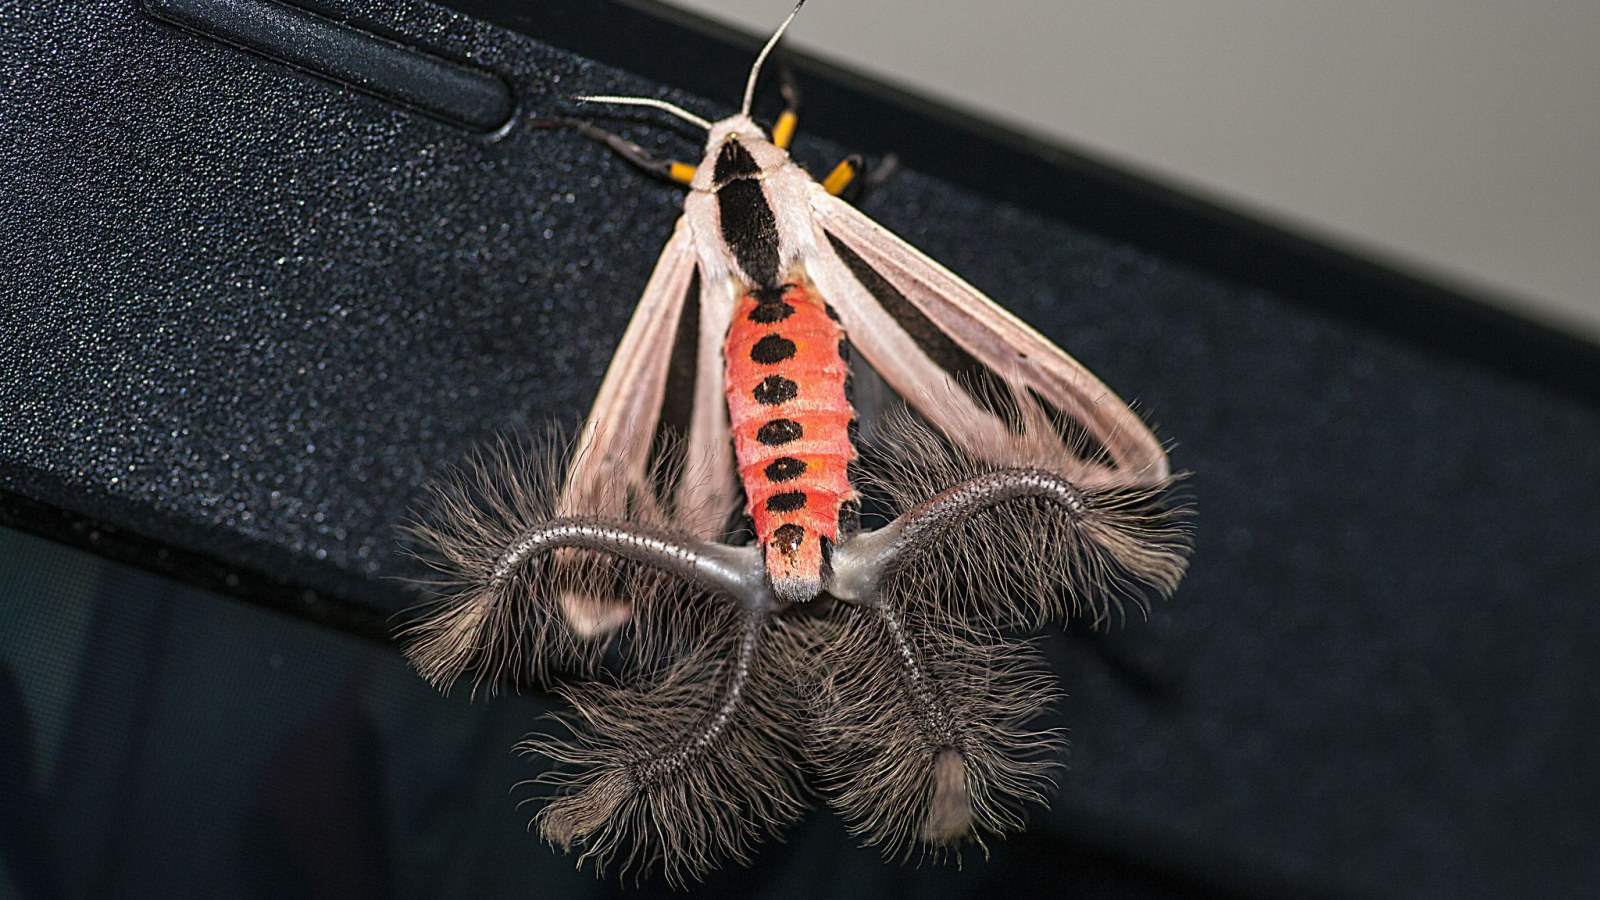 This Moth's Weird Inflatable Butt Is Going Viral, But It Has